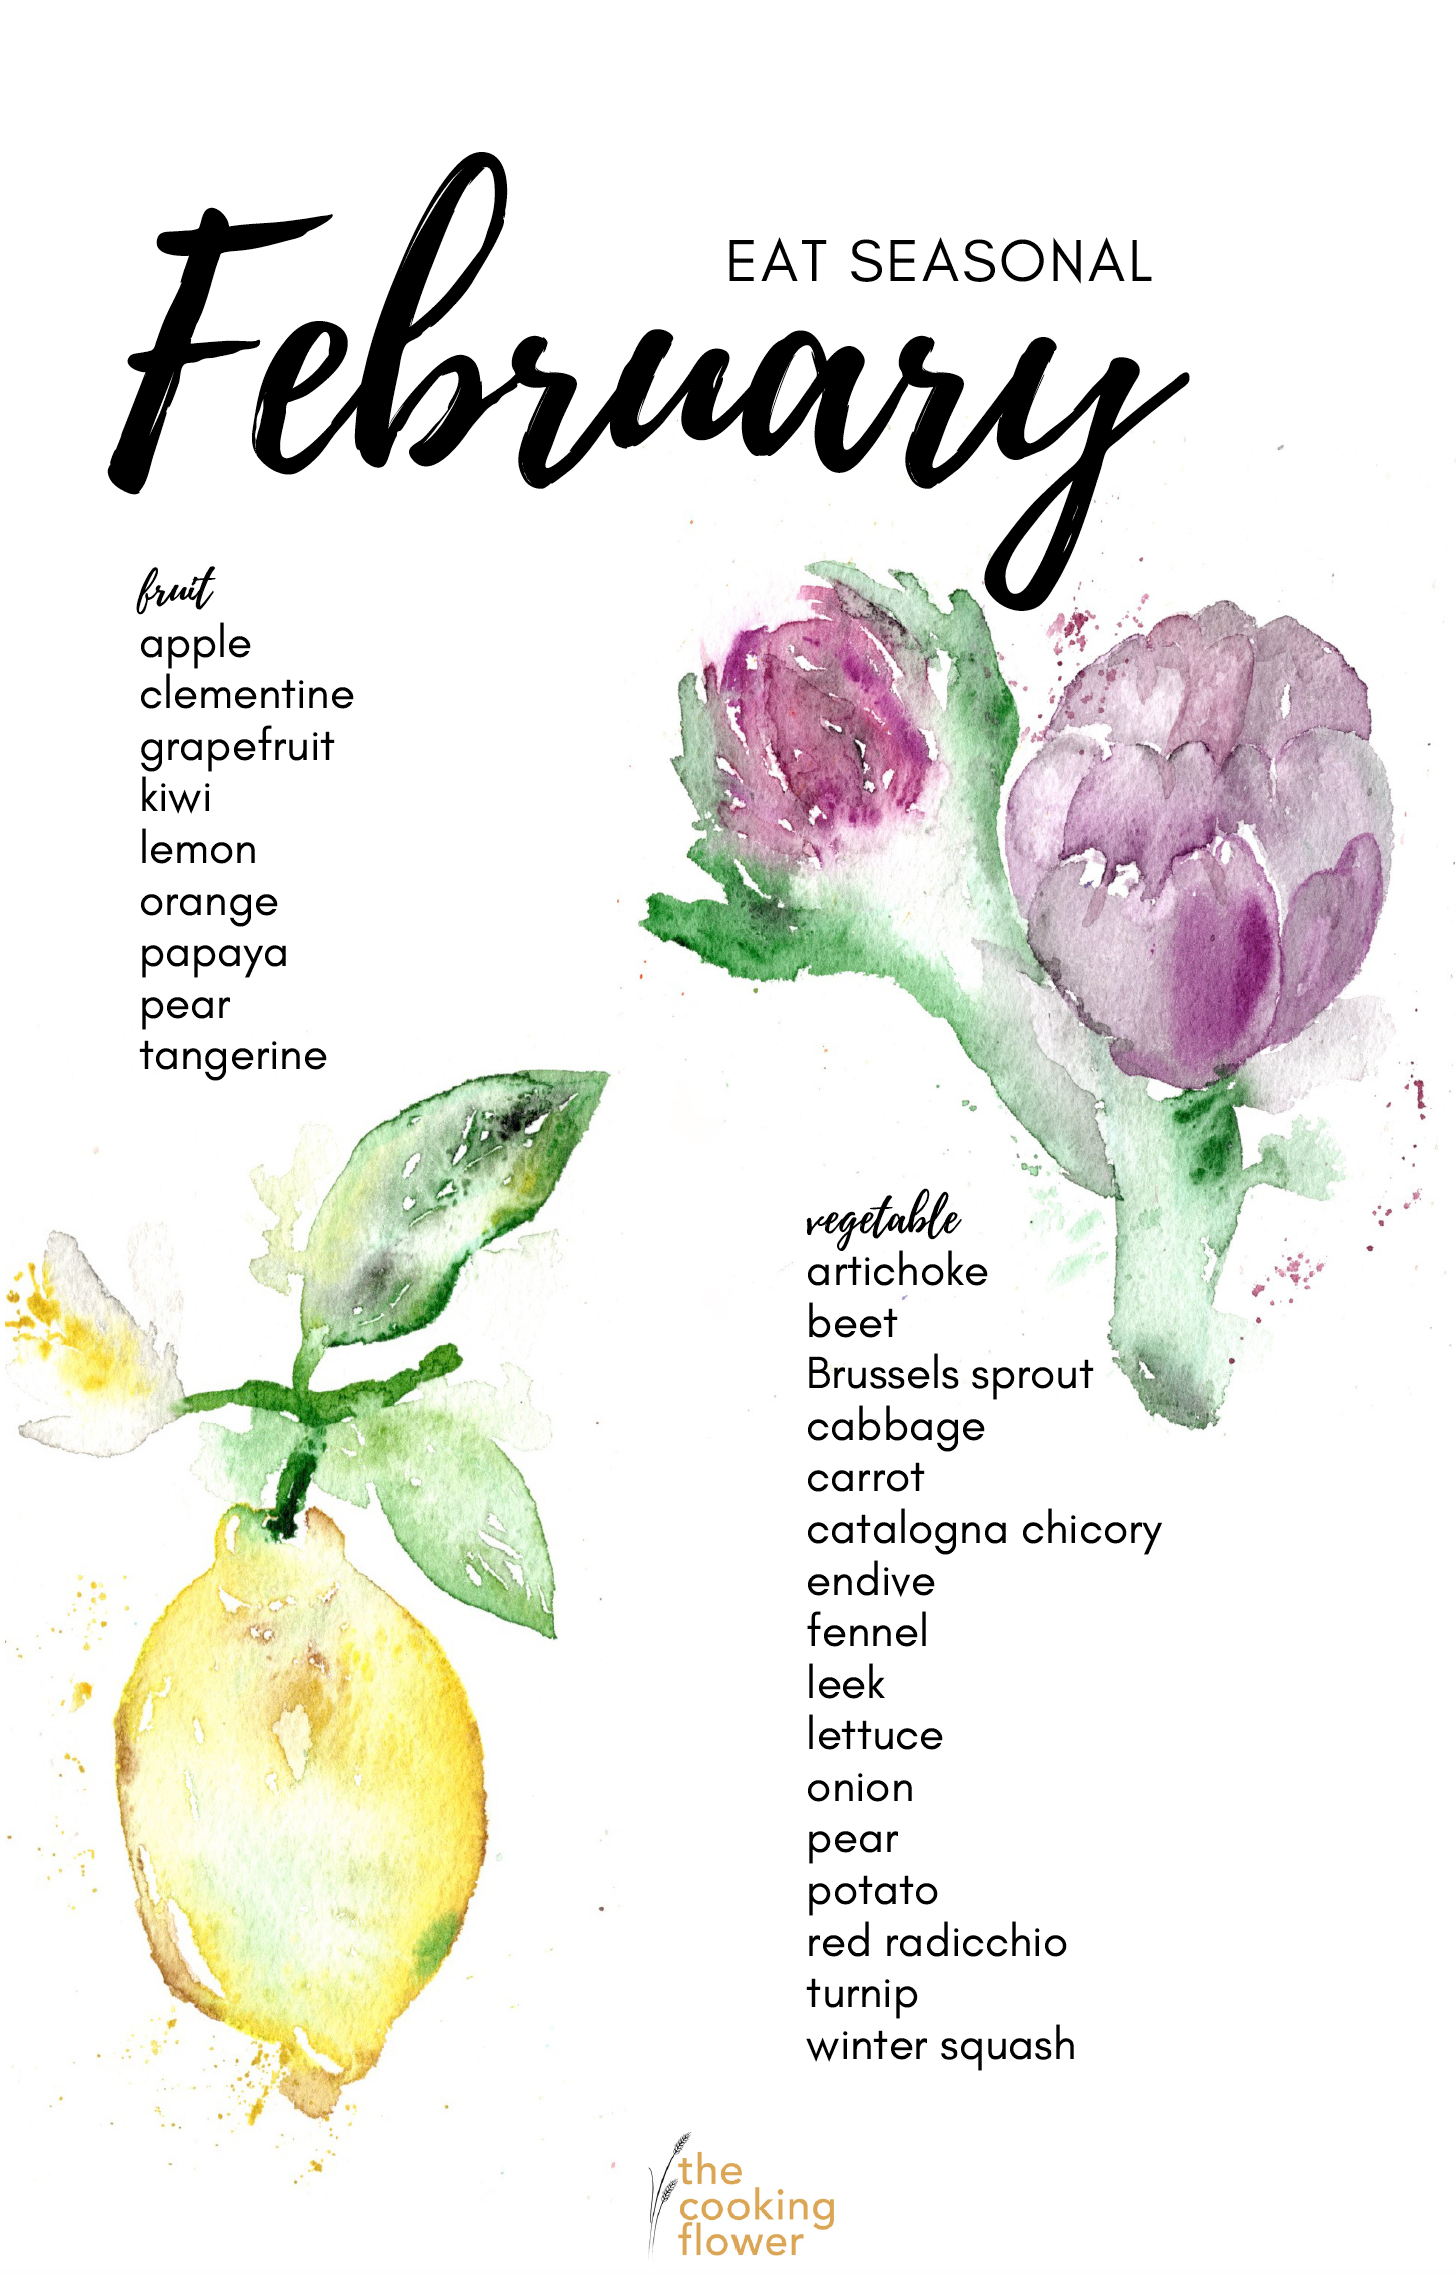 february-seasonal-shopping-list